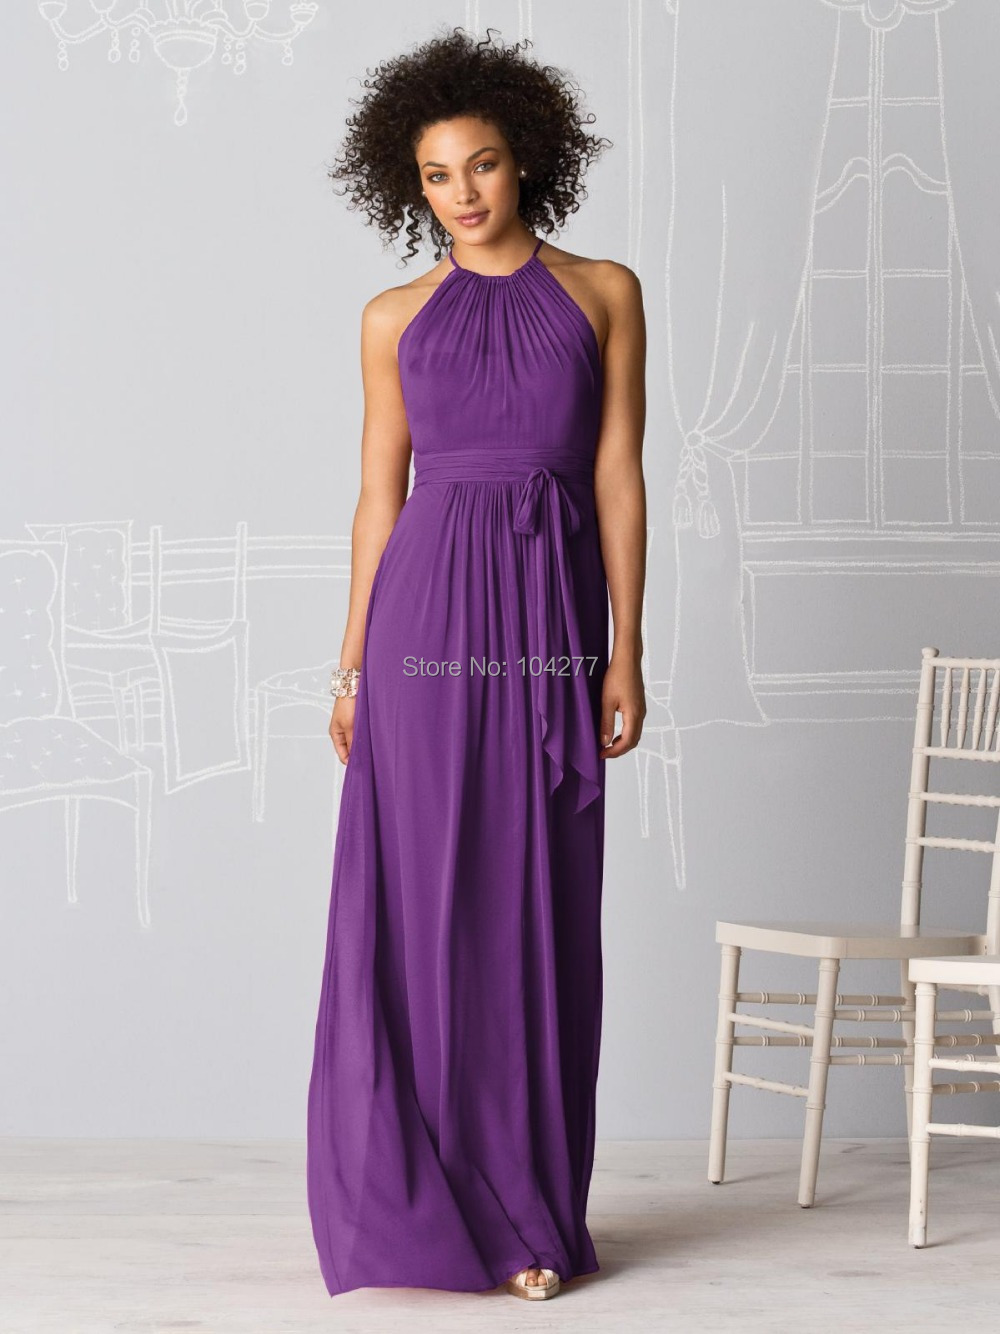 Party dress costume picture more detailed picture about under under 70usd cheap purple chiffon bridesmaid dresses a line halter high full length long wedding ombrellifo Choice Image